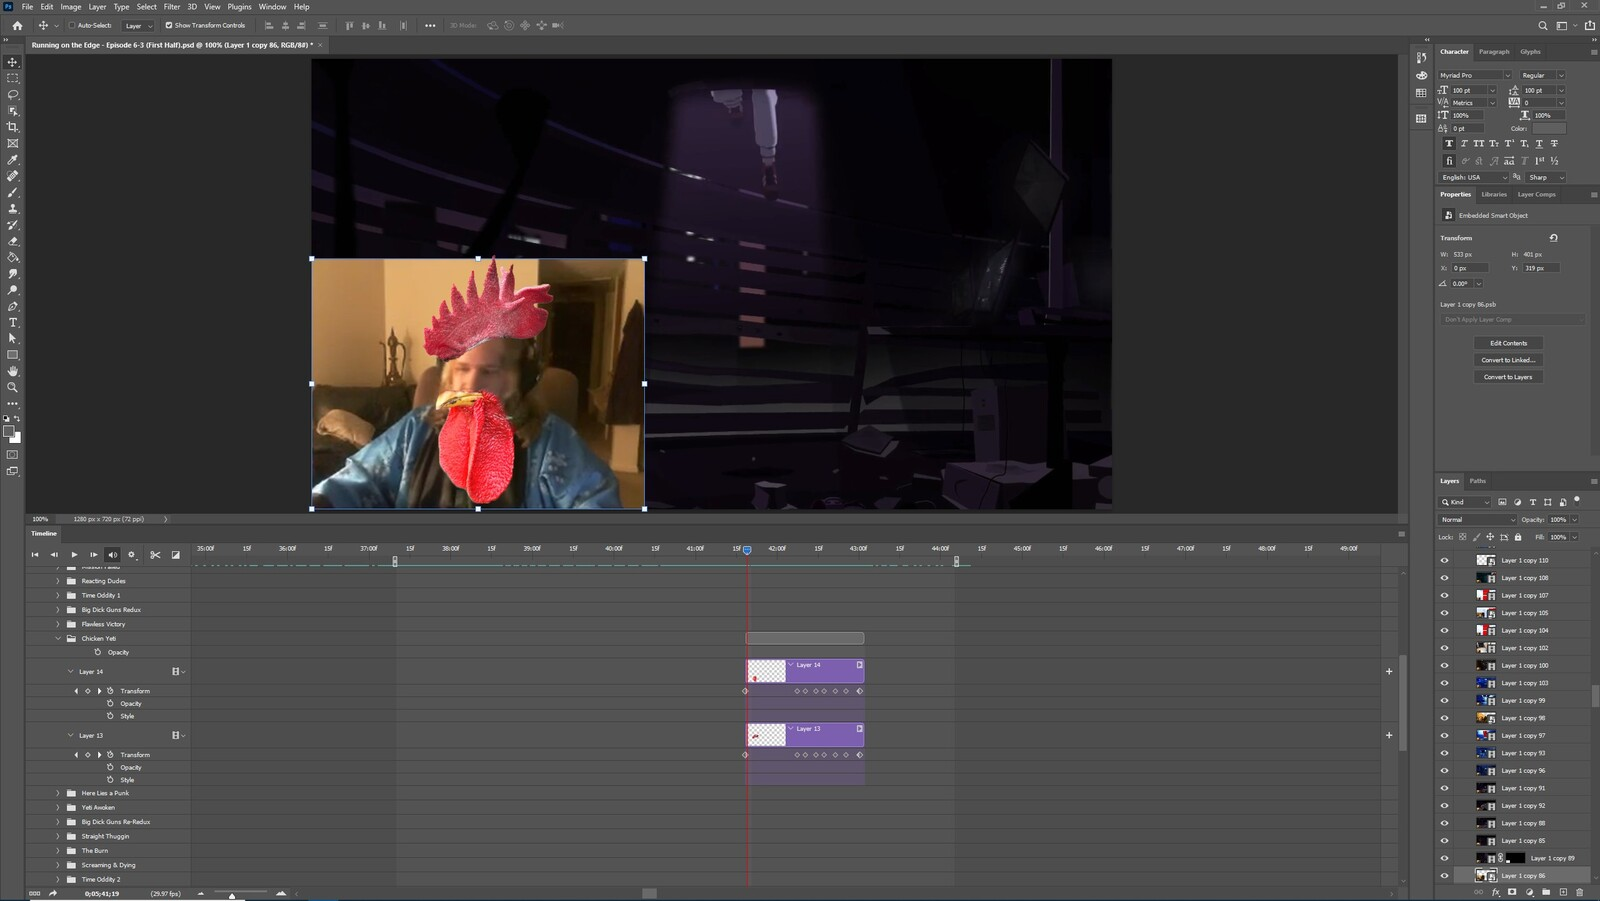 """The """"Inner Chicken"""" visual effect within Photoshop video editor"""